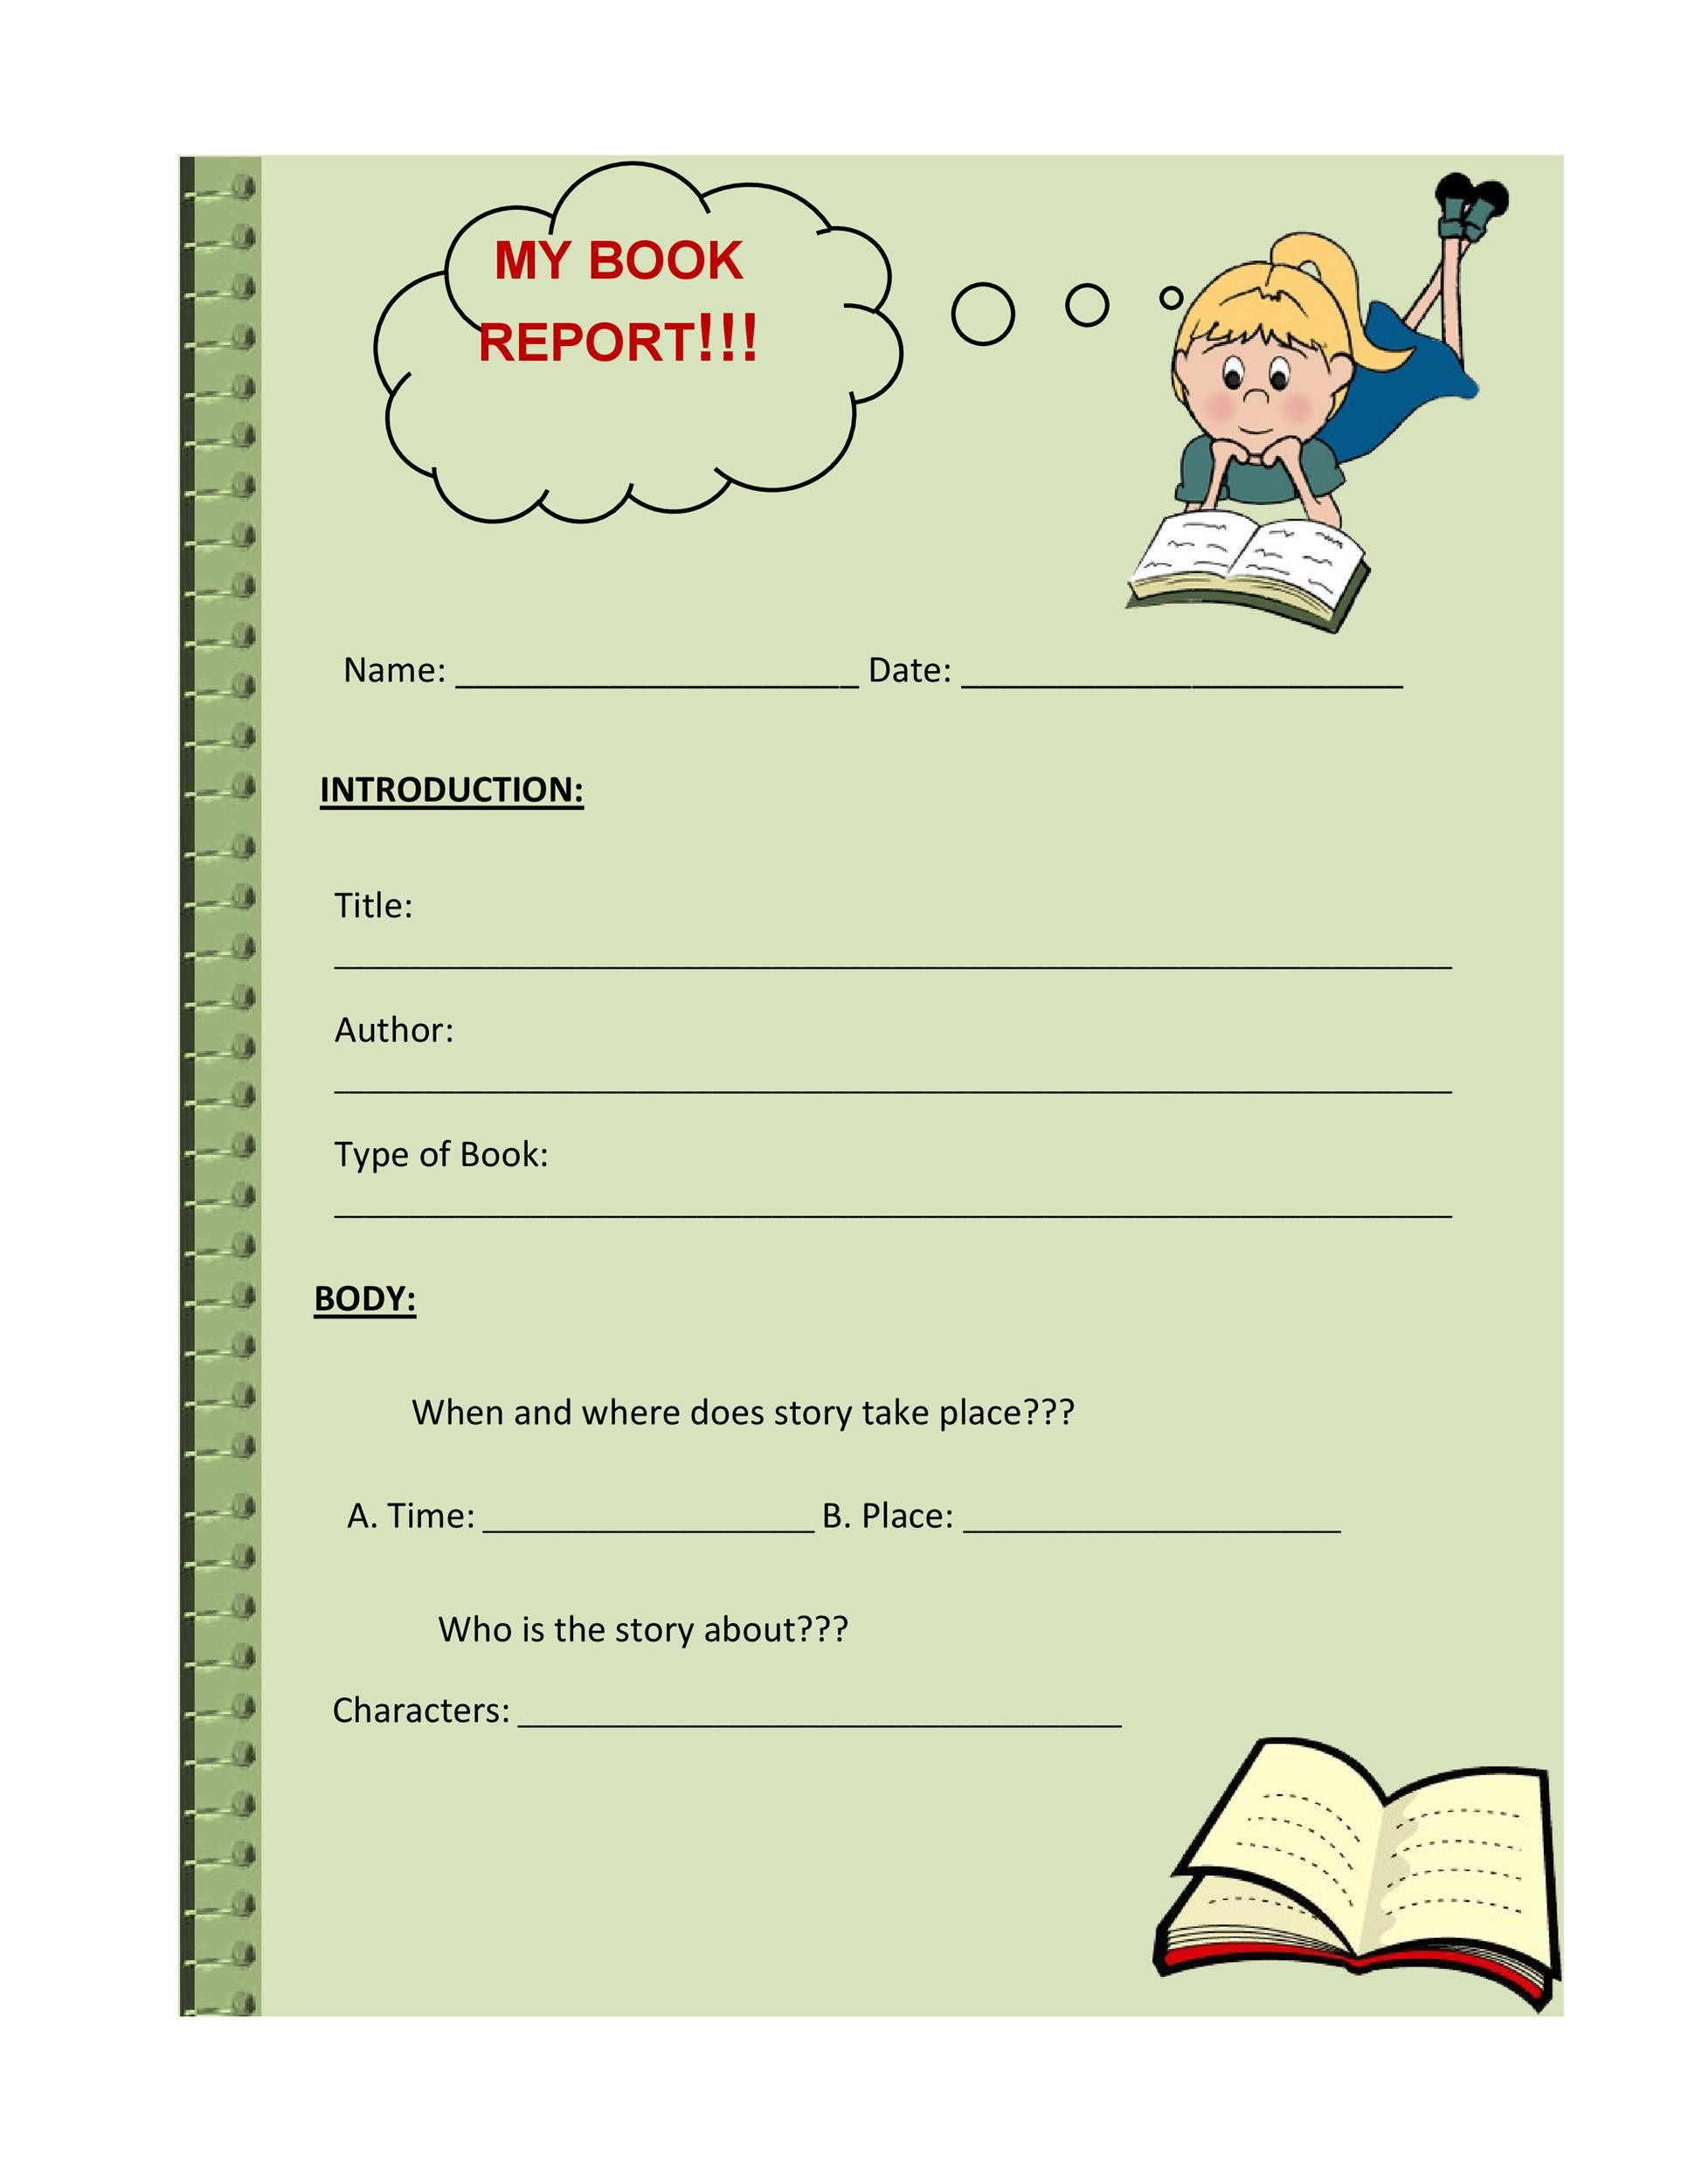 Education World, Fresh Ideas for Creative Book Reports